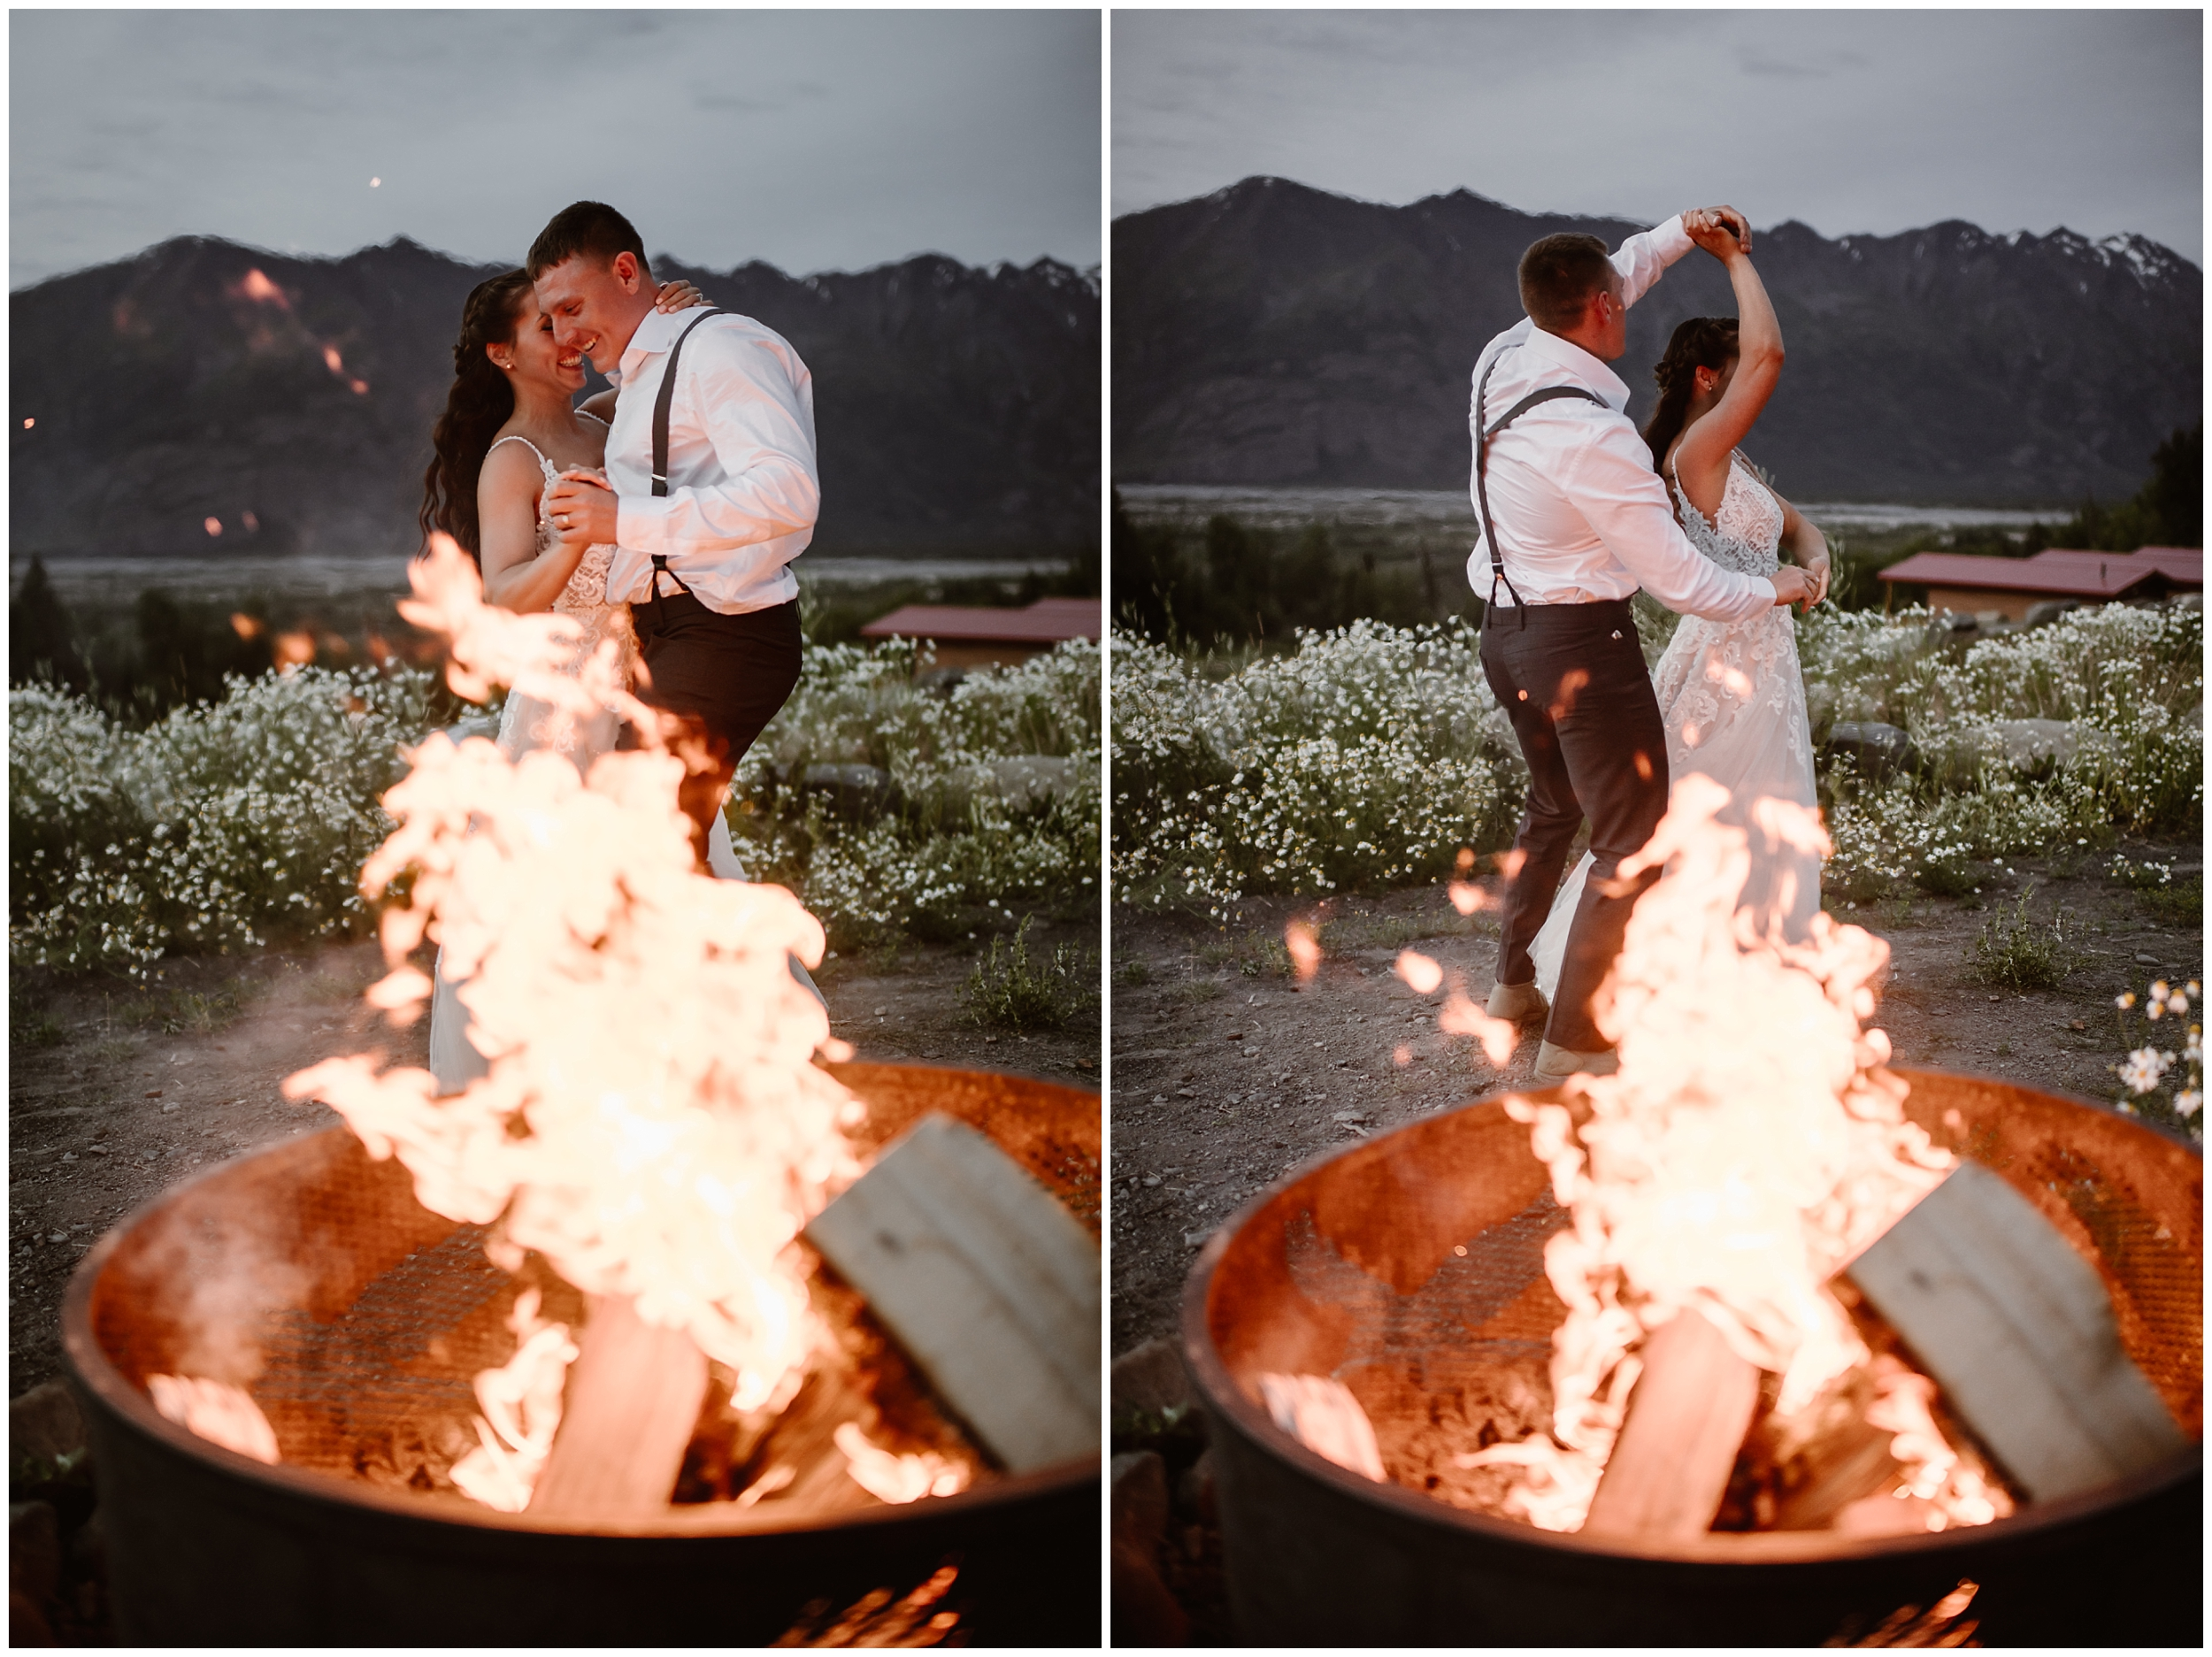 In this split image of two elopement photos taken by Adventure Instead, an elopement photographer, Jordyn and Connor have their first dance in front of a roaring campfire in the midst of blue hour. In the photo on the left, Jordyn and Connor hold each other close while they dance. In the photo on the right, Connor spins Jordyn around in front of the fire.